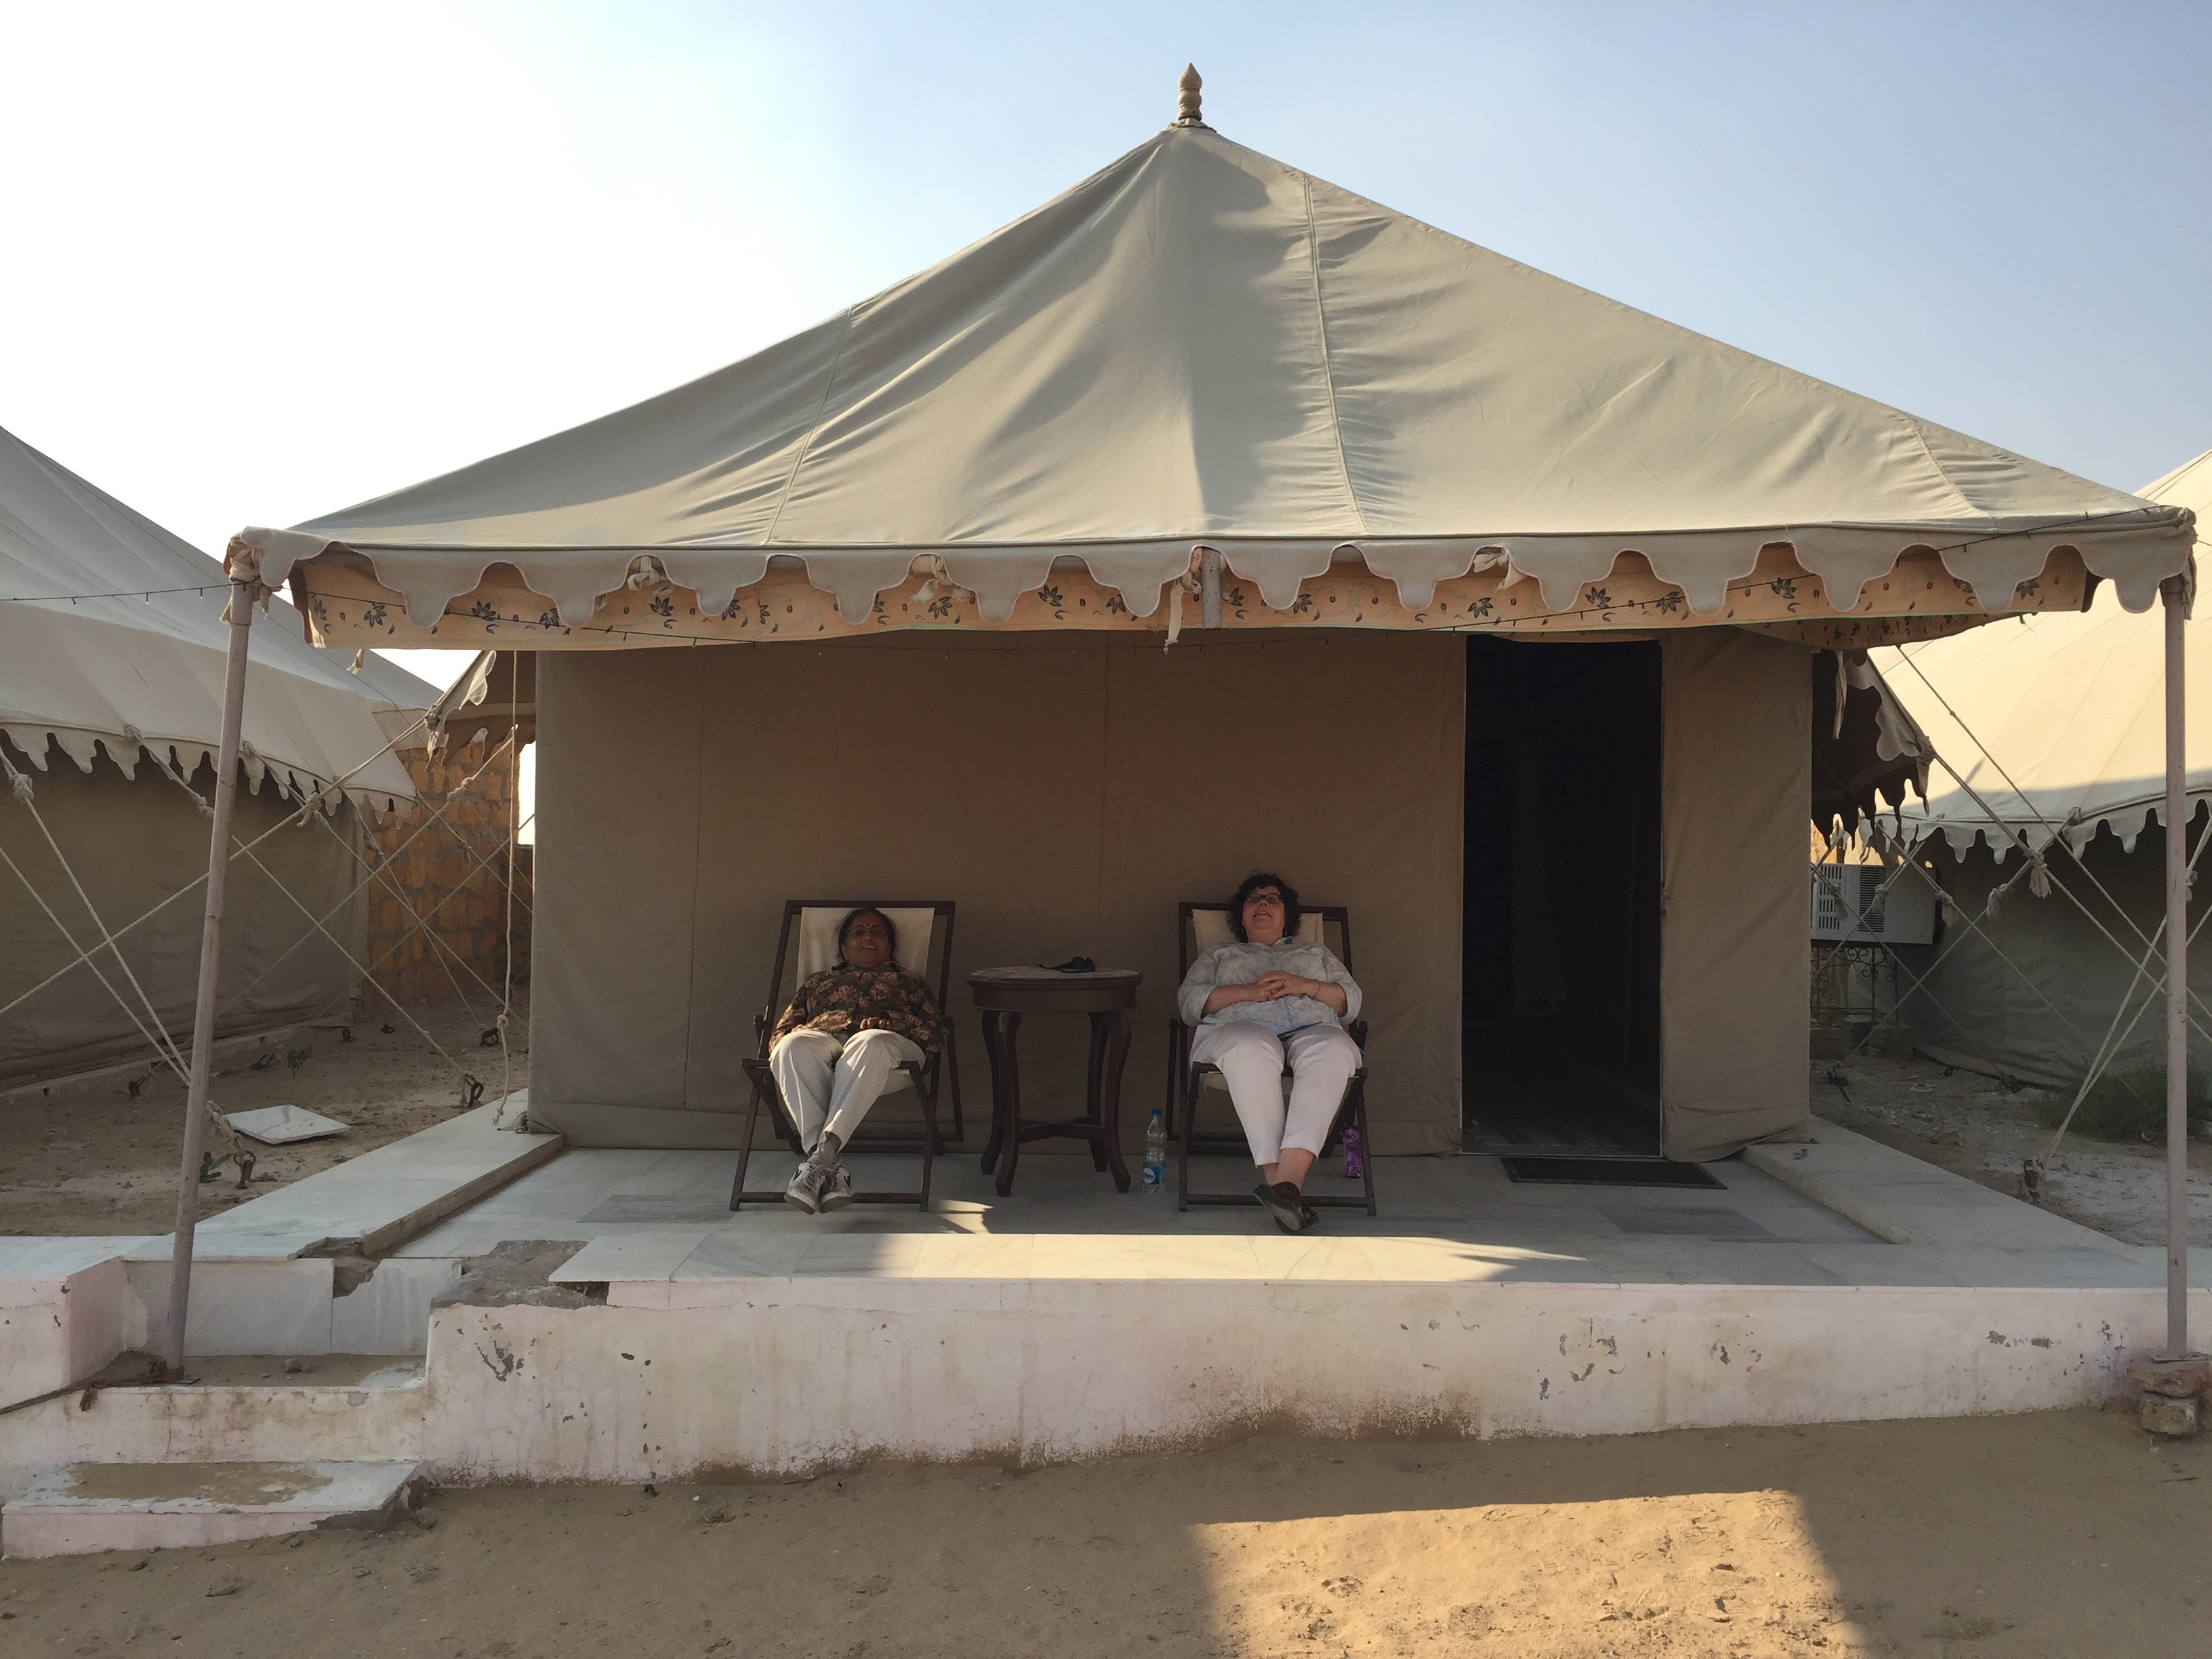 u0027Traditionalu0027 Mewar maharajah-style desert tents. Our bare bones tents might lack & Camel 101u2013Guest post by Barb Taub | Elizabeth Hein - Scribbling In ...